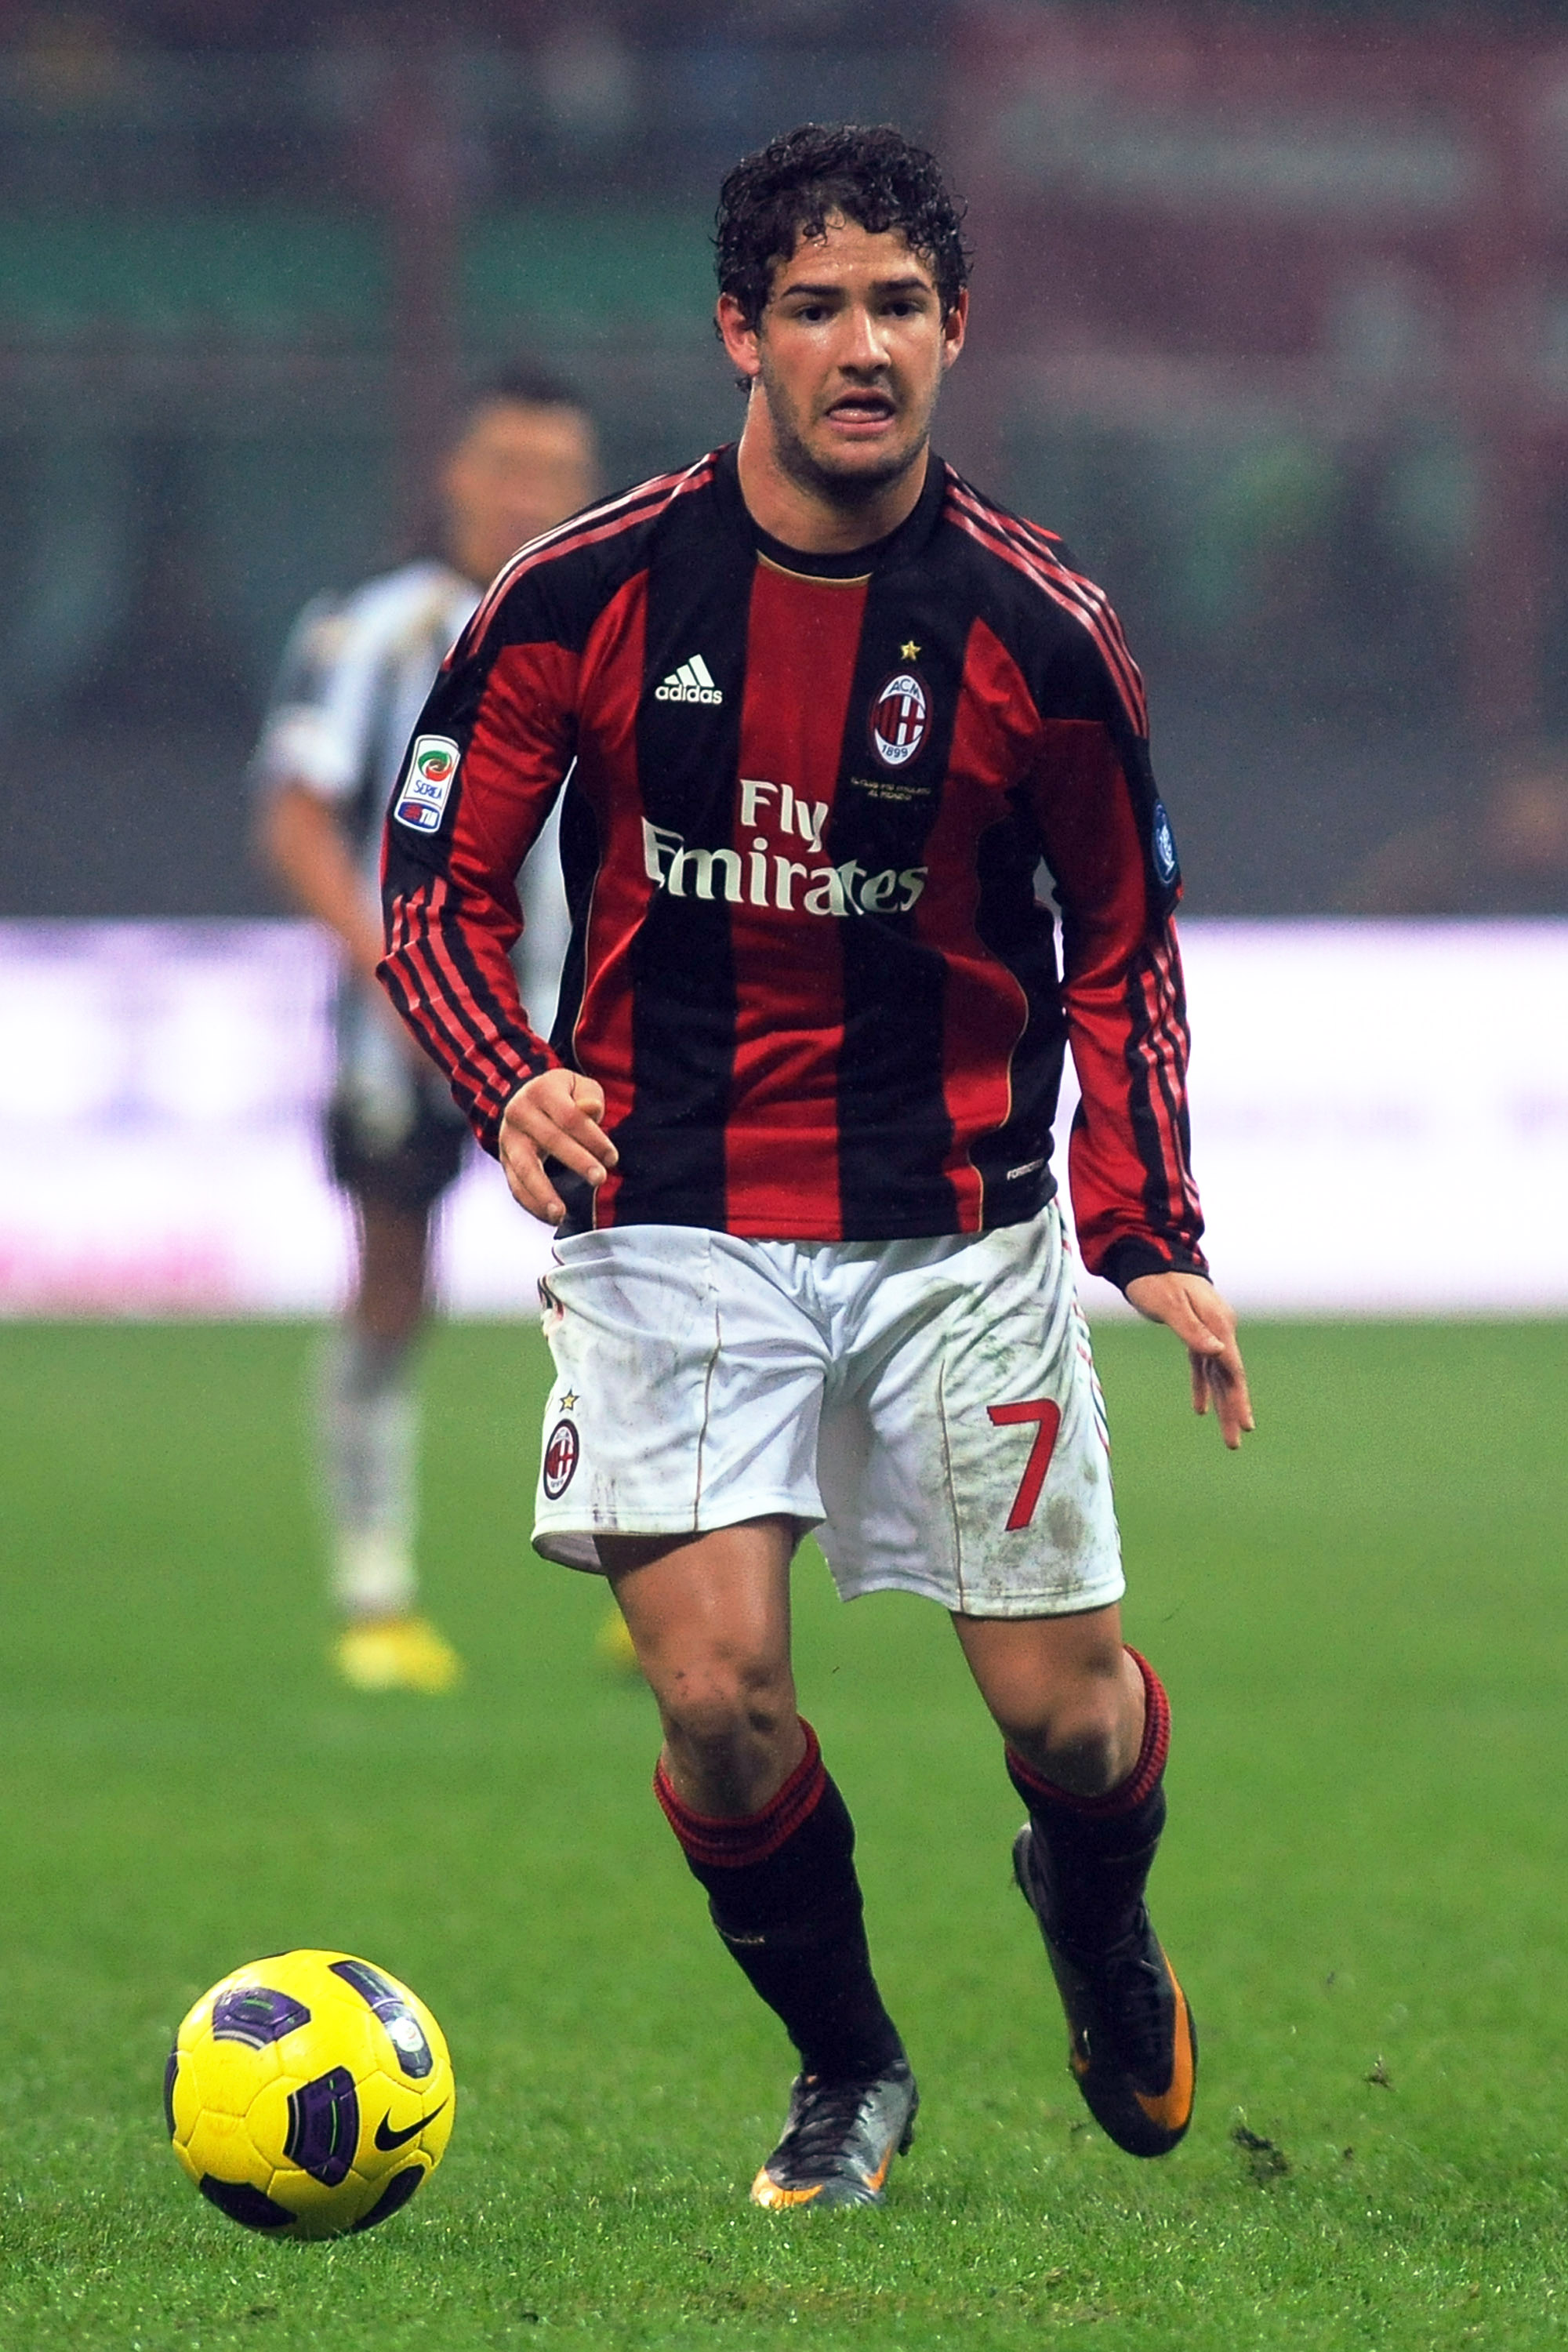 MILAN, ITALY - JANUARY 09:  Pato of AC Milan in action during the Serie A match between AC Milan and Udinese Calcio at Stadio Giuseppe Meazza on January 9, 2011 in Milan, Italy.  (Photo by Valerio Pennicino/Getty Images)